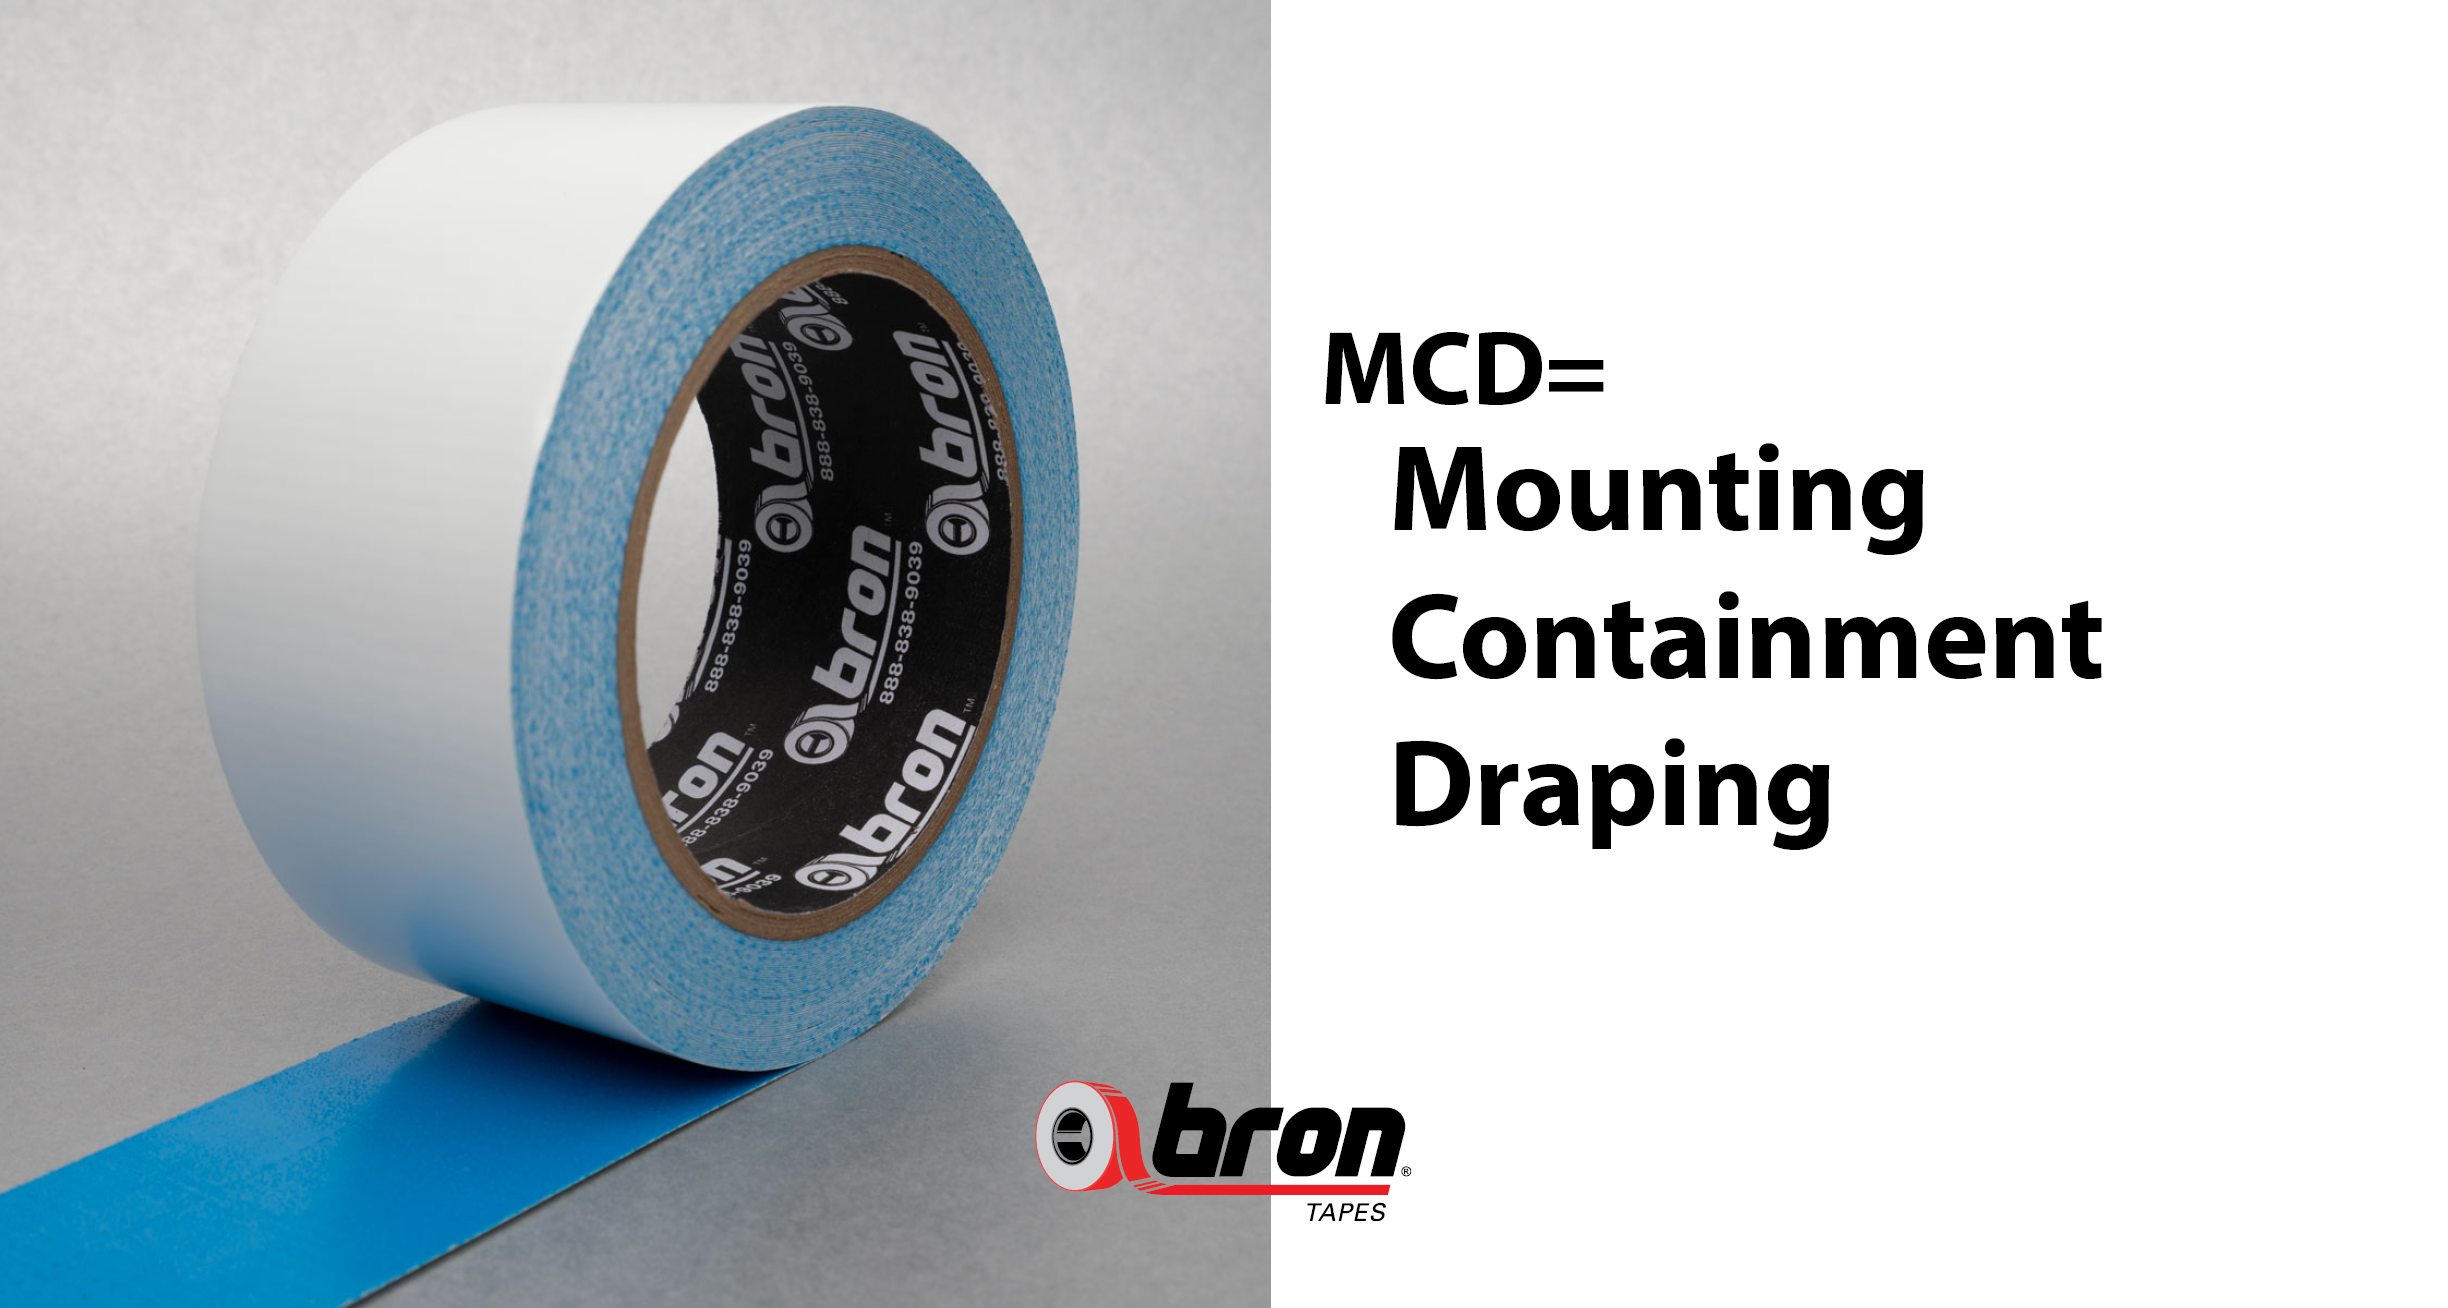 MCD Mounting Containment Draping Tape